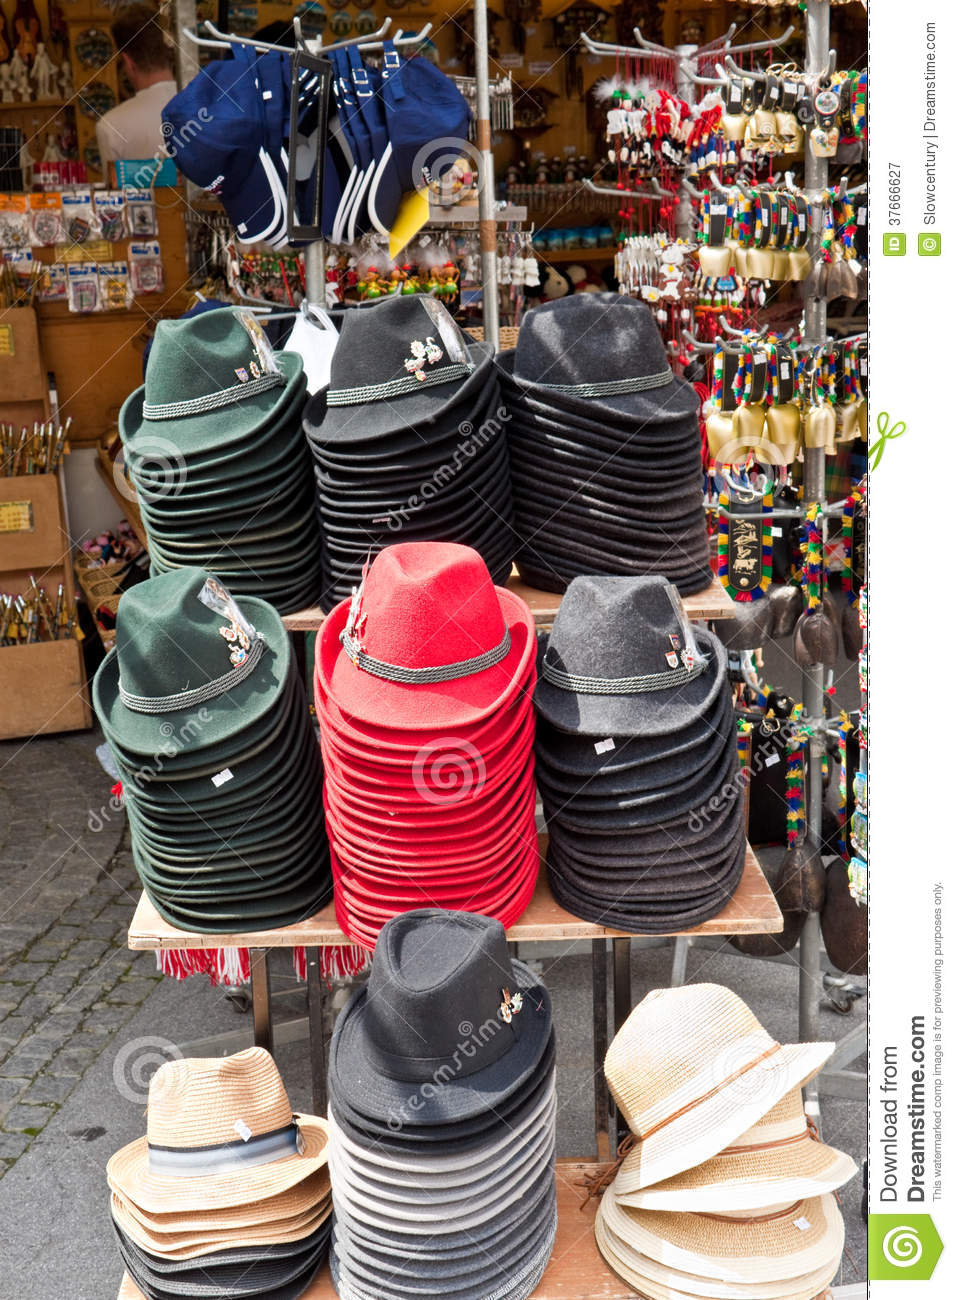 01c1e2cf SALZBURG, AUSTRIA - JULY 3, 2013: Traditional austrian hats for sale in a  outdoor souvenir shop in the center of Salzburg.